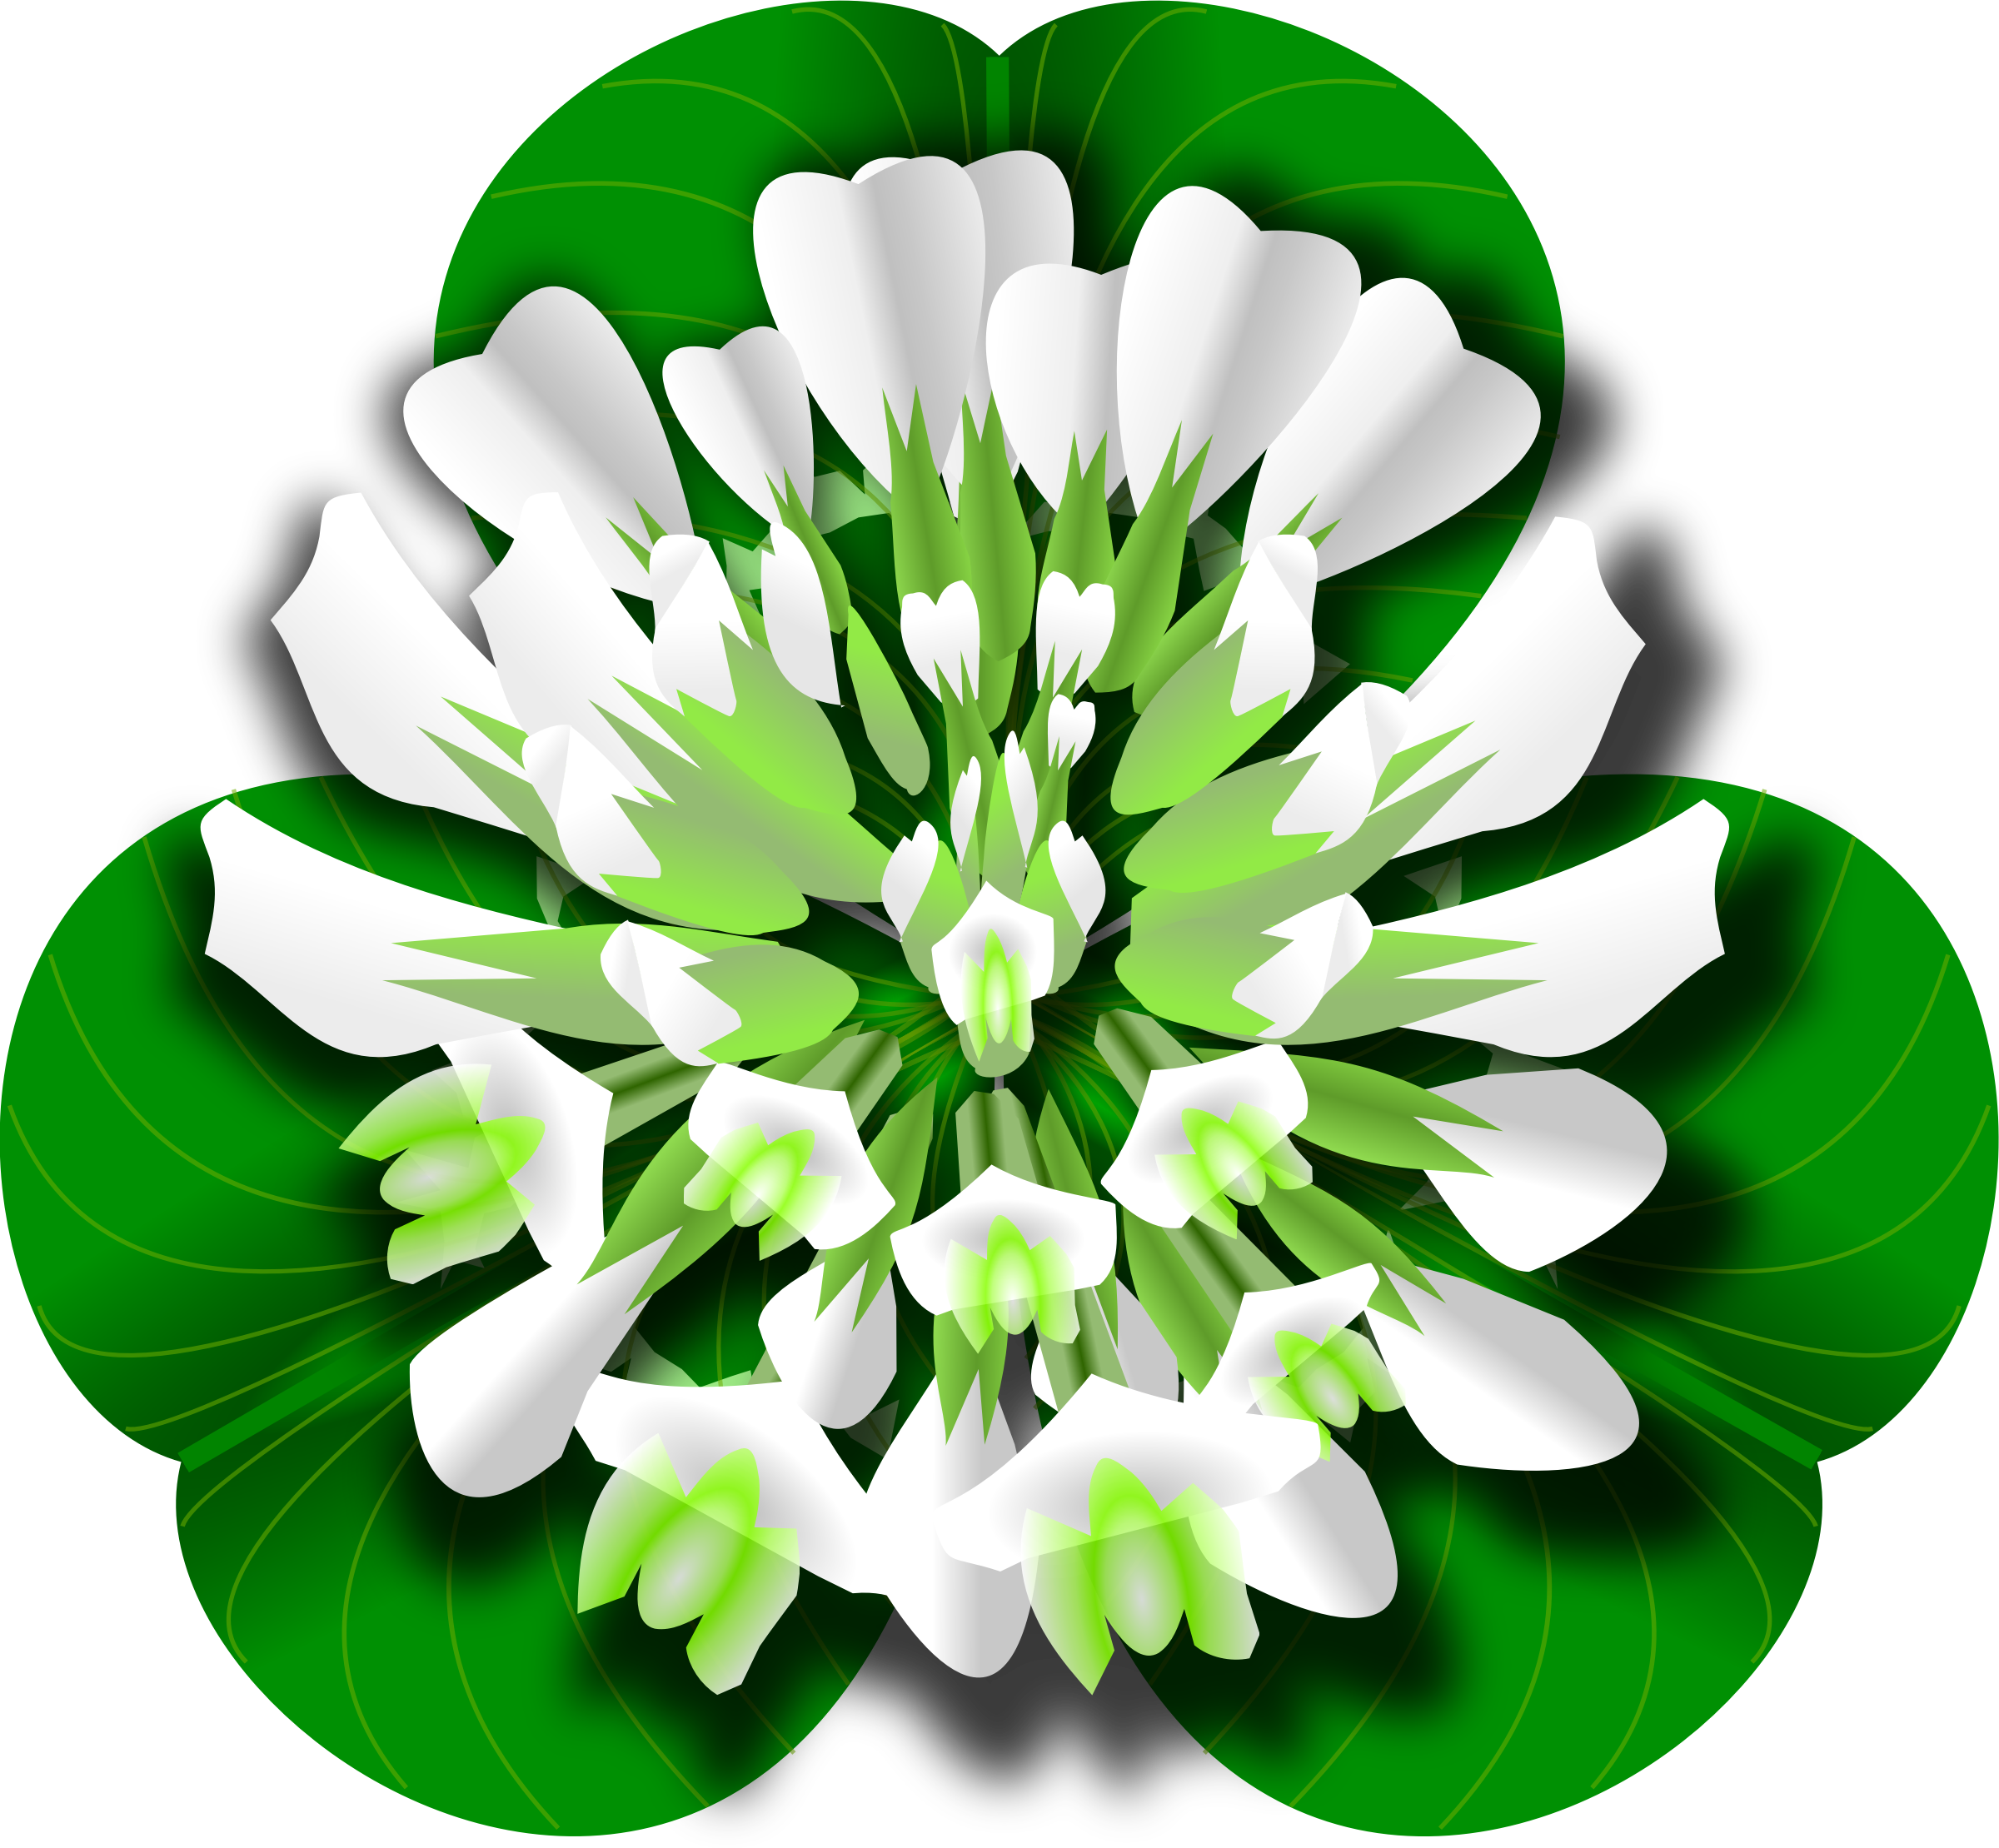 flower leaf clipart - photo #45